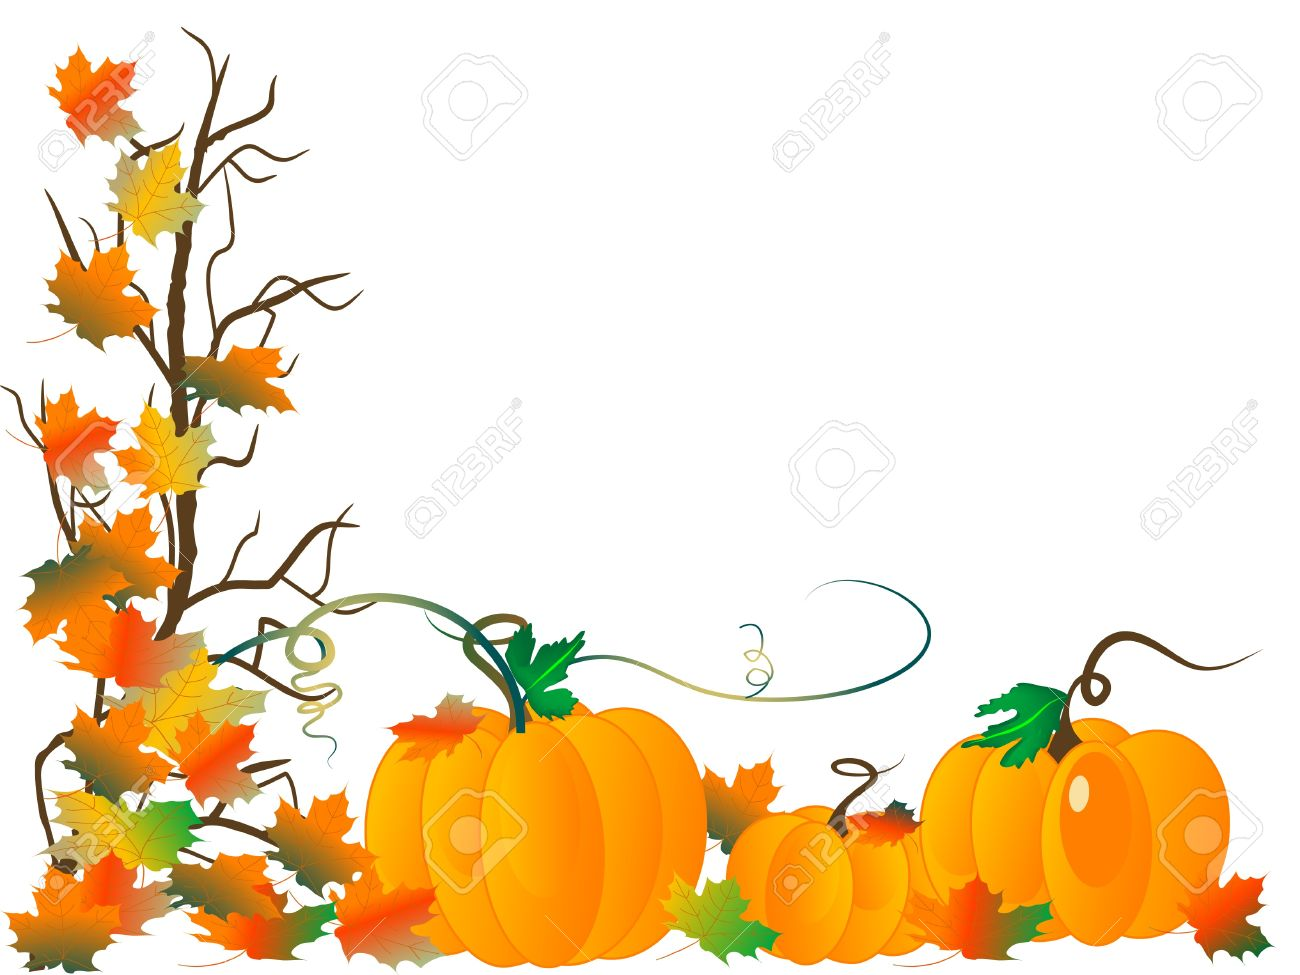 Abstract background with pumpkins and autumn leaves.